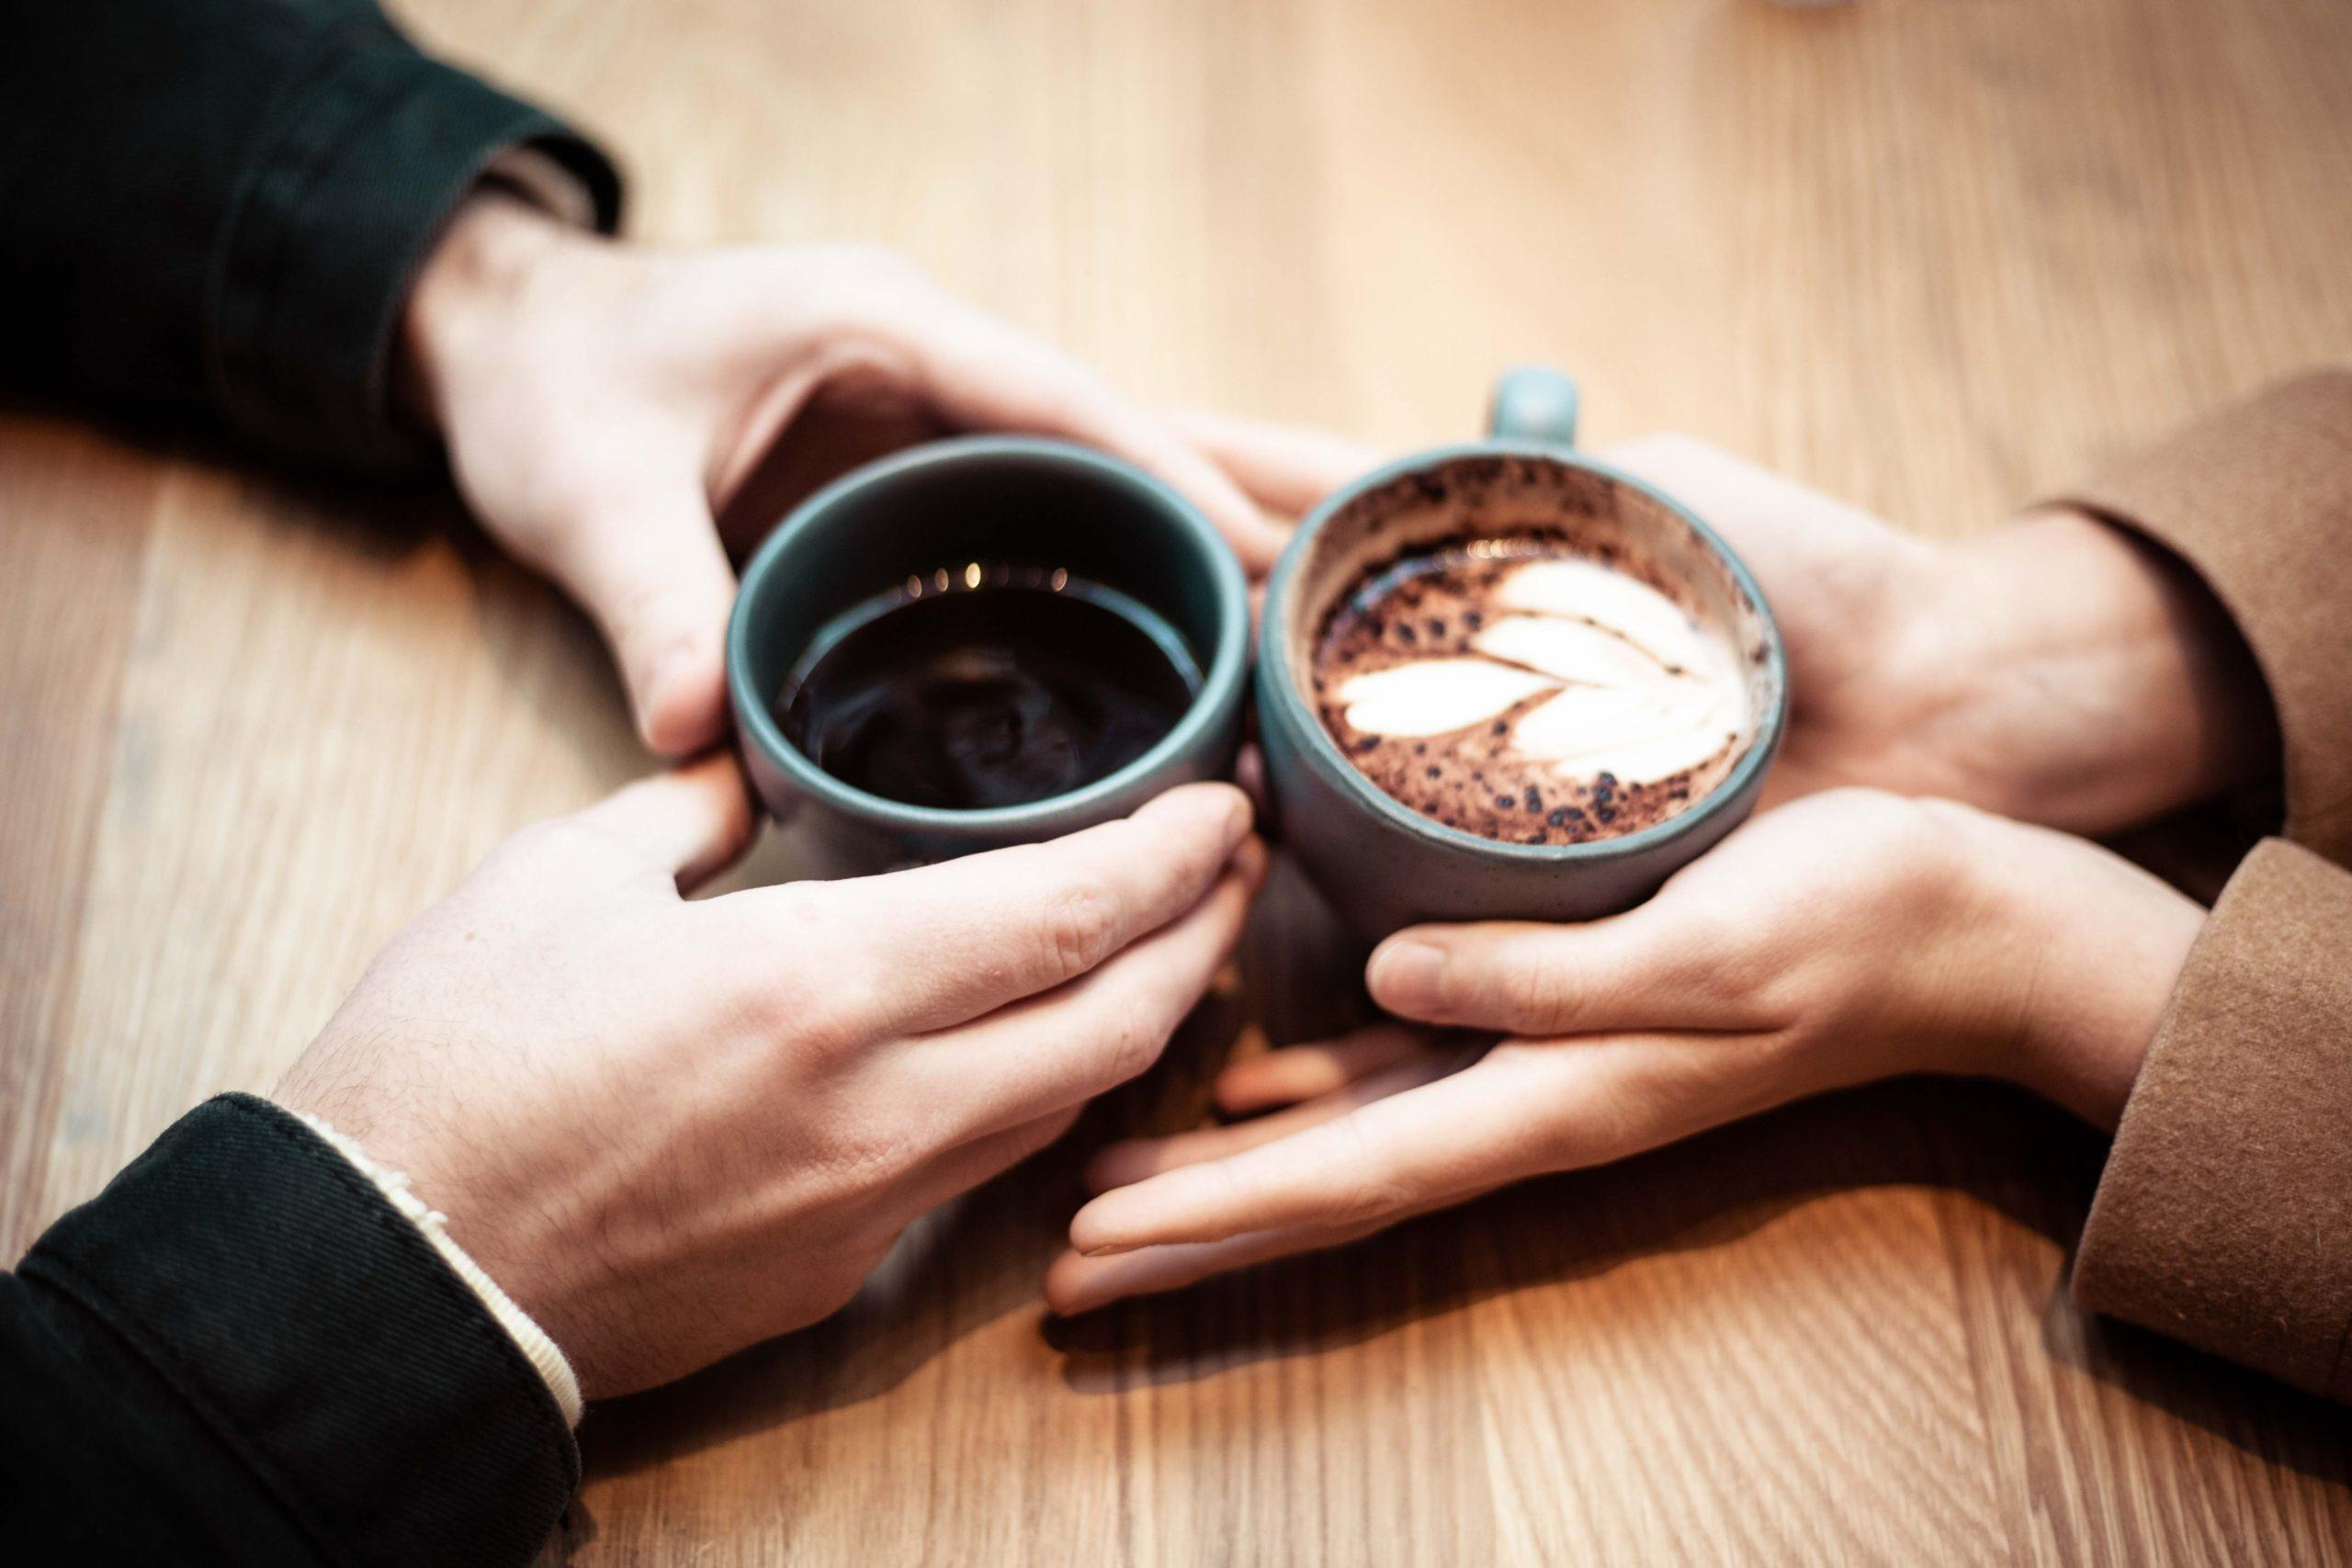 High-end singles dating over coffee